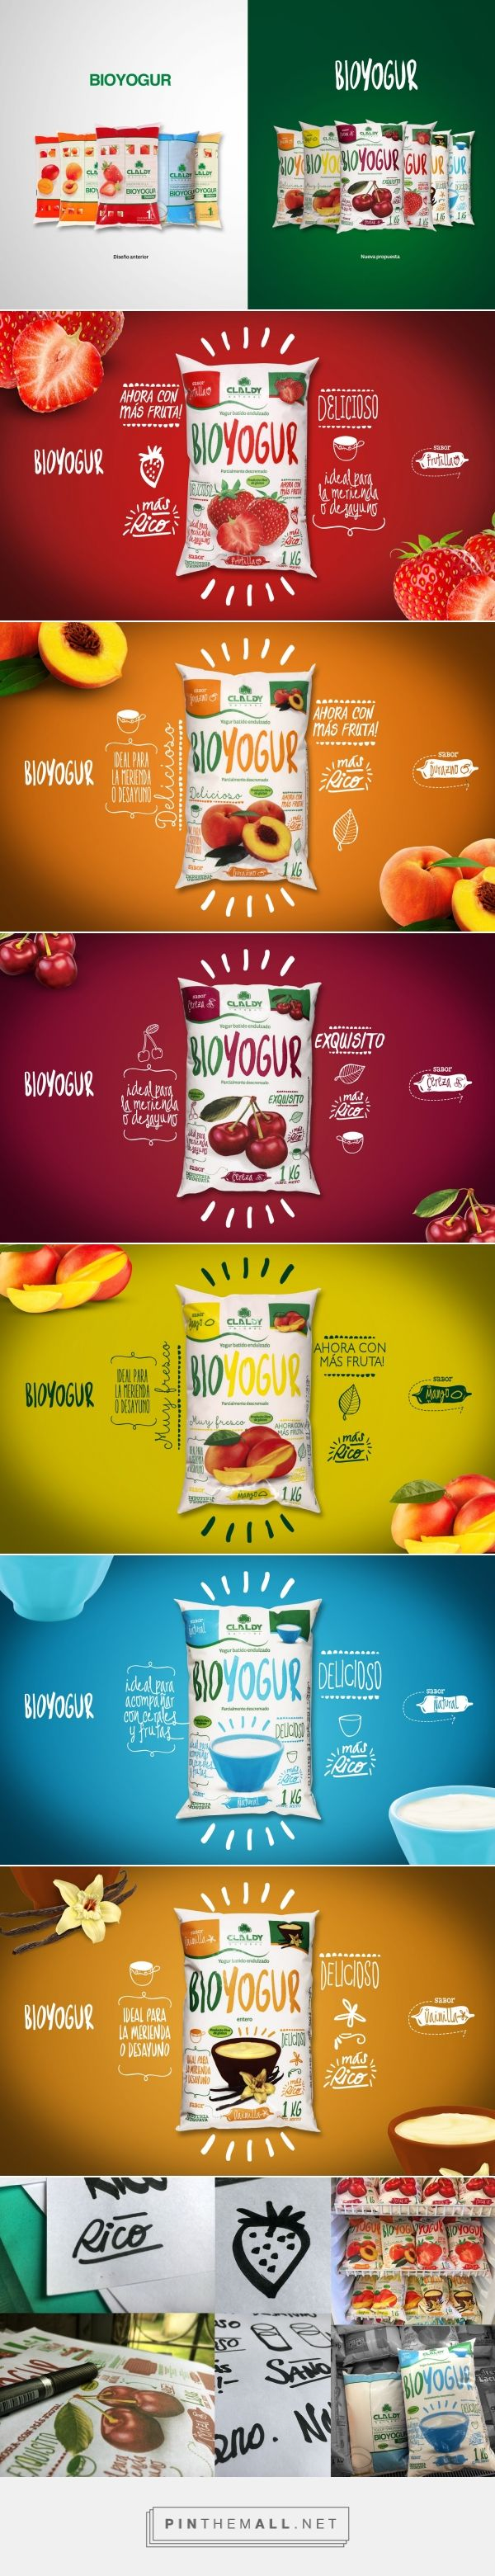 Claldy Bioyogur Yogurt - Packaging of the World - Creative Package Design Gallery - http://www.packagingoftheworld.com/2016/10/claldy-bioyogur.html